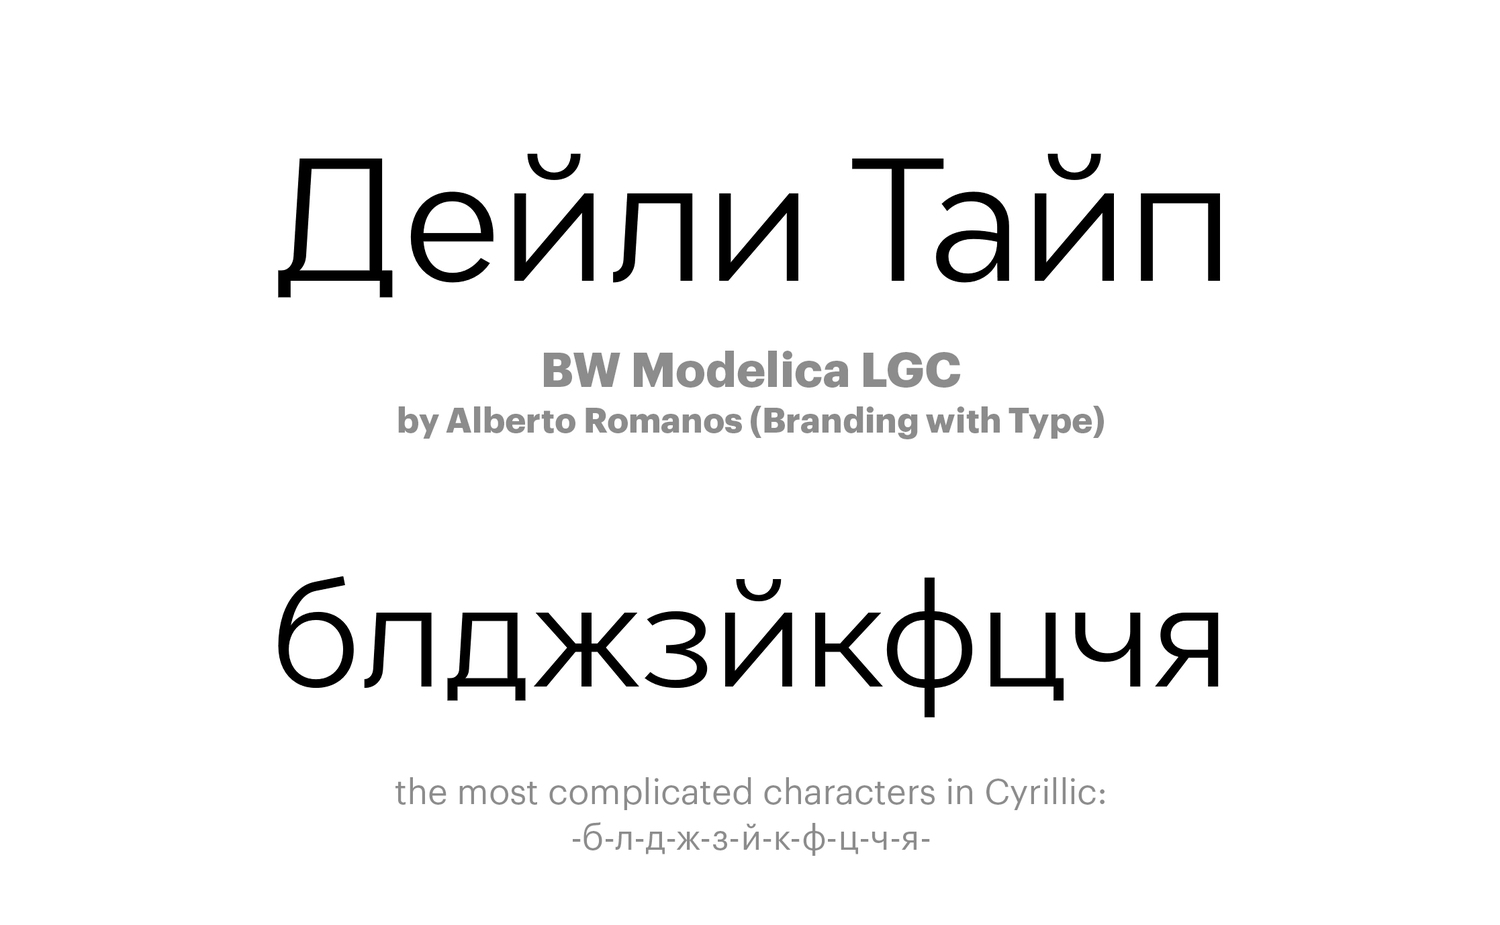 BW-Modelica-LGC-by-Alberto-Romanos-(Branding-with-Type)